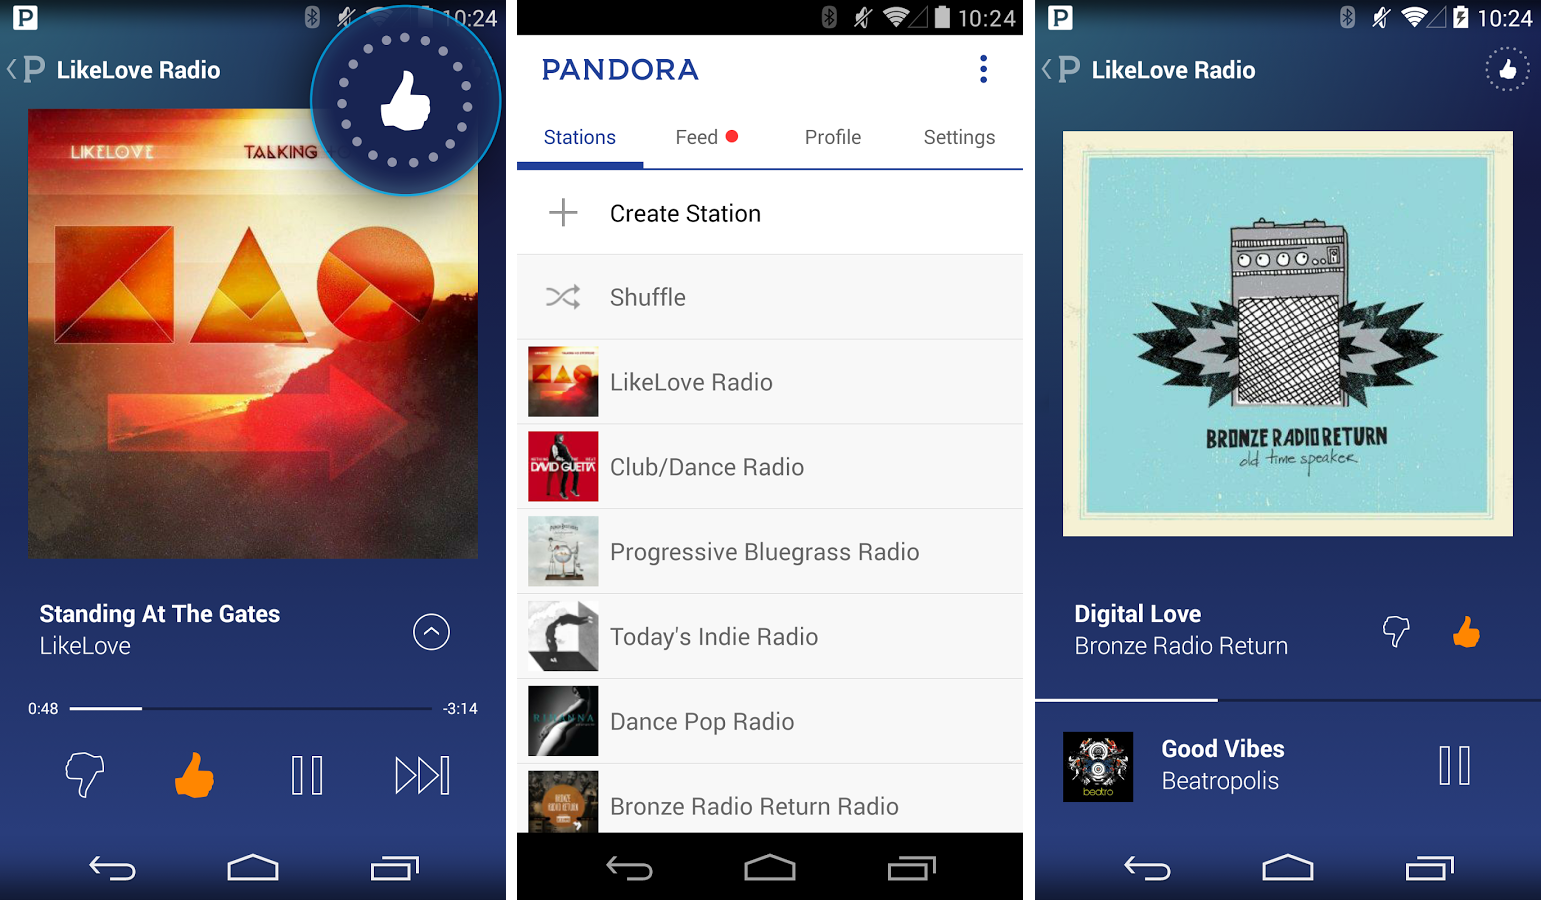 Pandora Acquiring Key Assets from Rdio